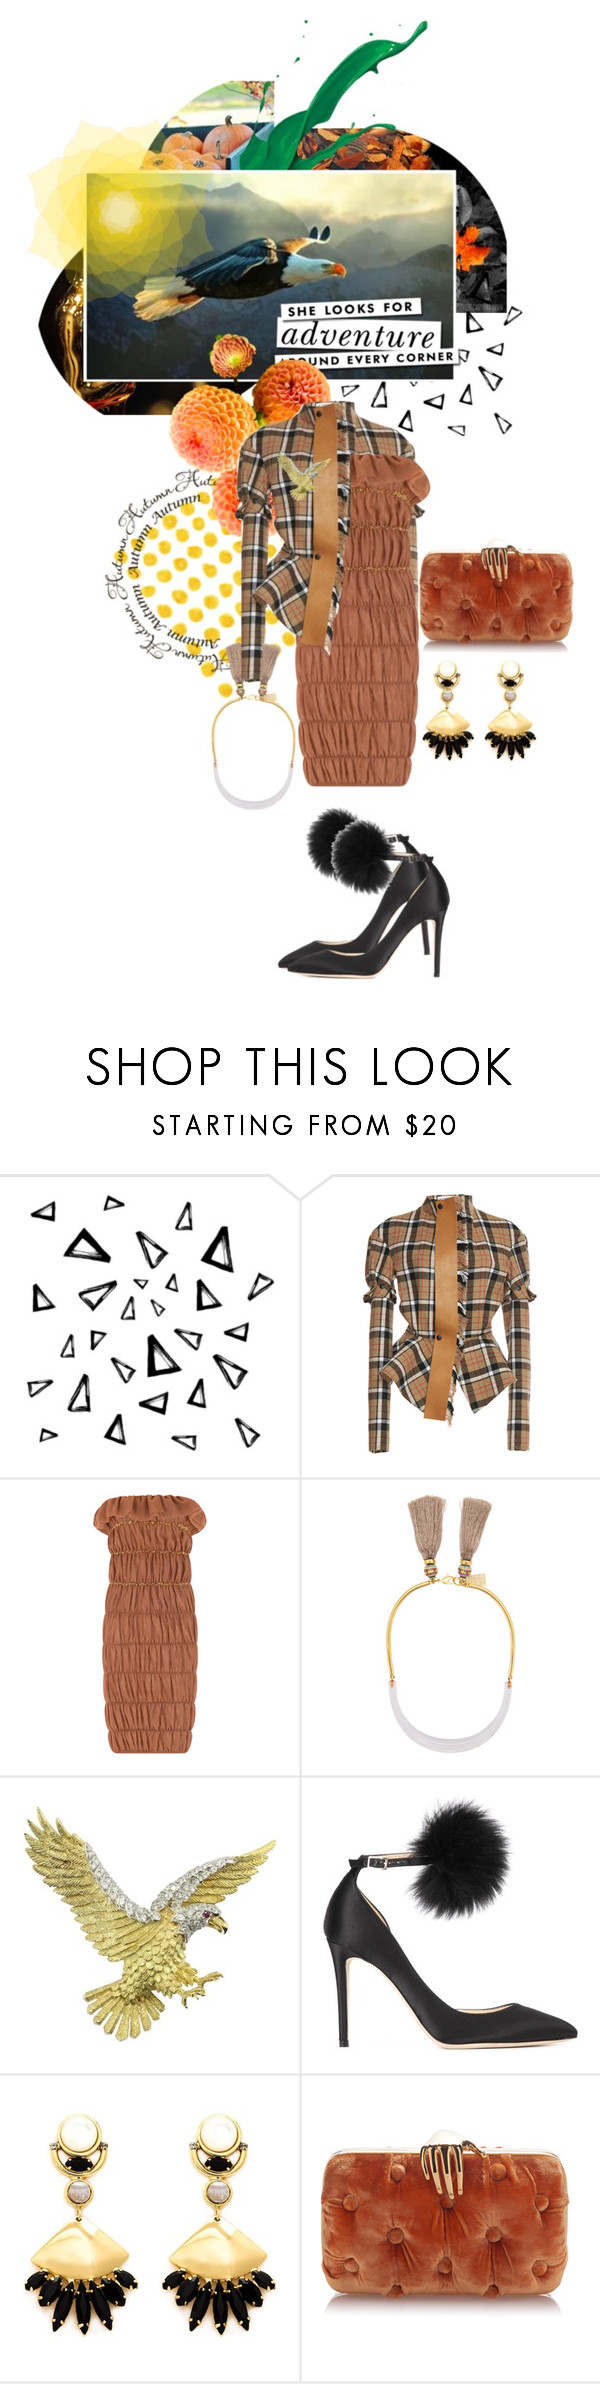 """2139.She looks for adventure around every corner"" by silvinadupuywriter ❤ liked on Polyvore featuring Nika, Kate Spade, Loewe, Lizzie Fortunato, Herbert Rosenthal, Jimmy Choo and Lizzie Fortunato Jewels"